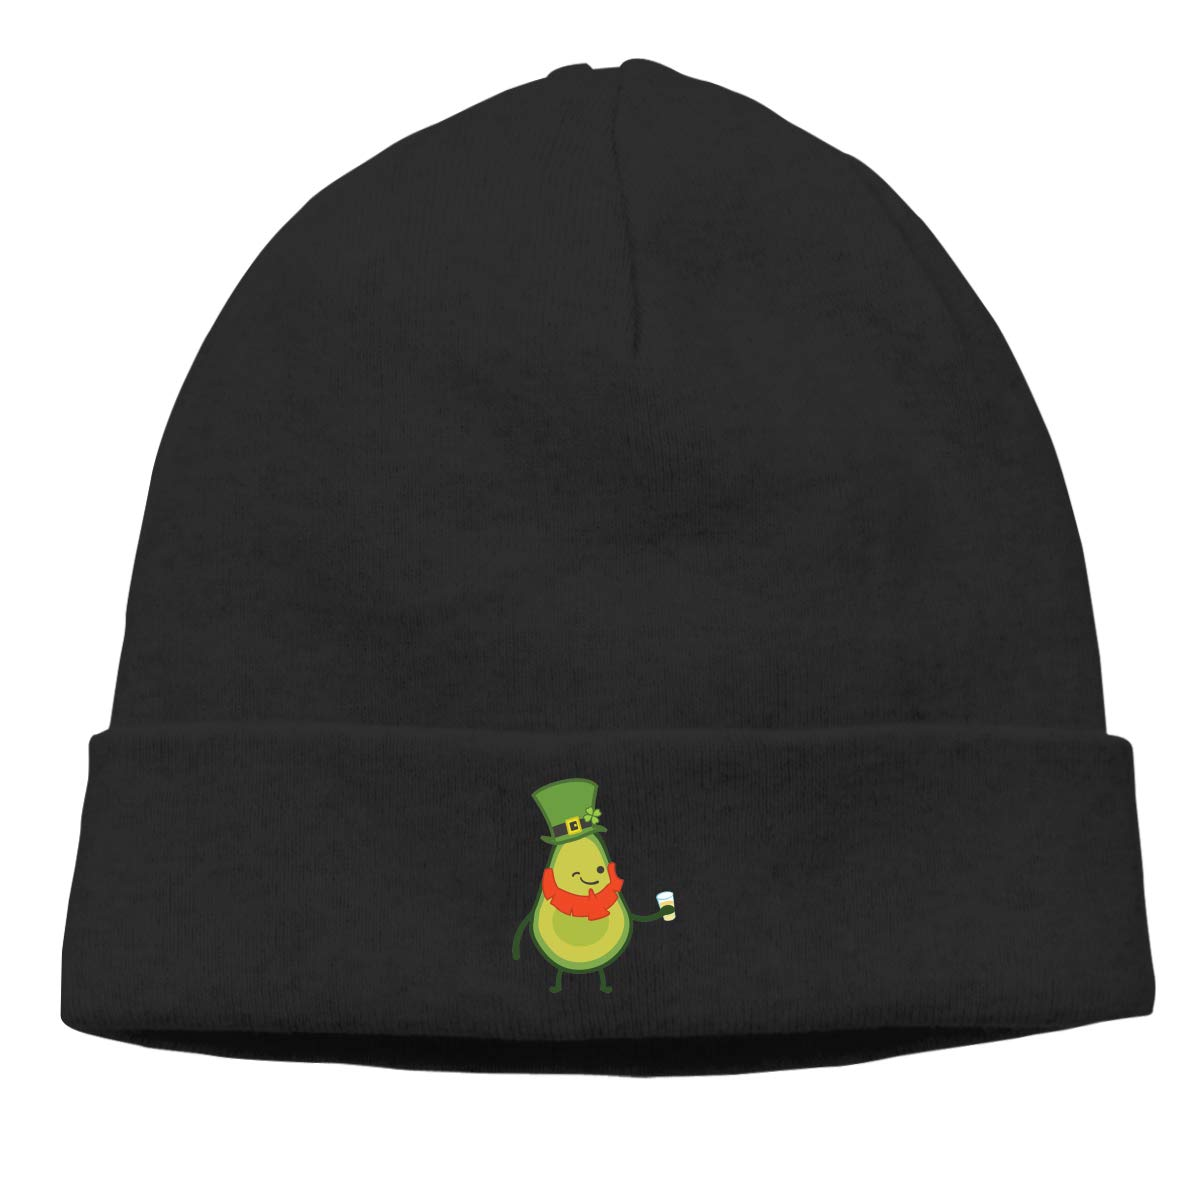 Nskngr Avocados Celebrate Holiday Unisex Cuffed Oversized Baggy Plain Skull